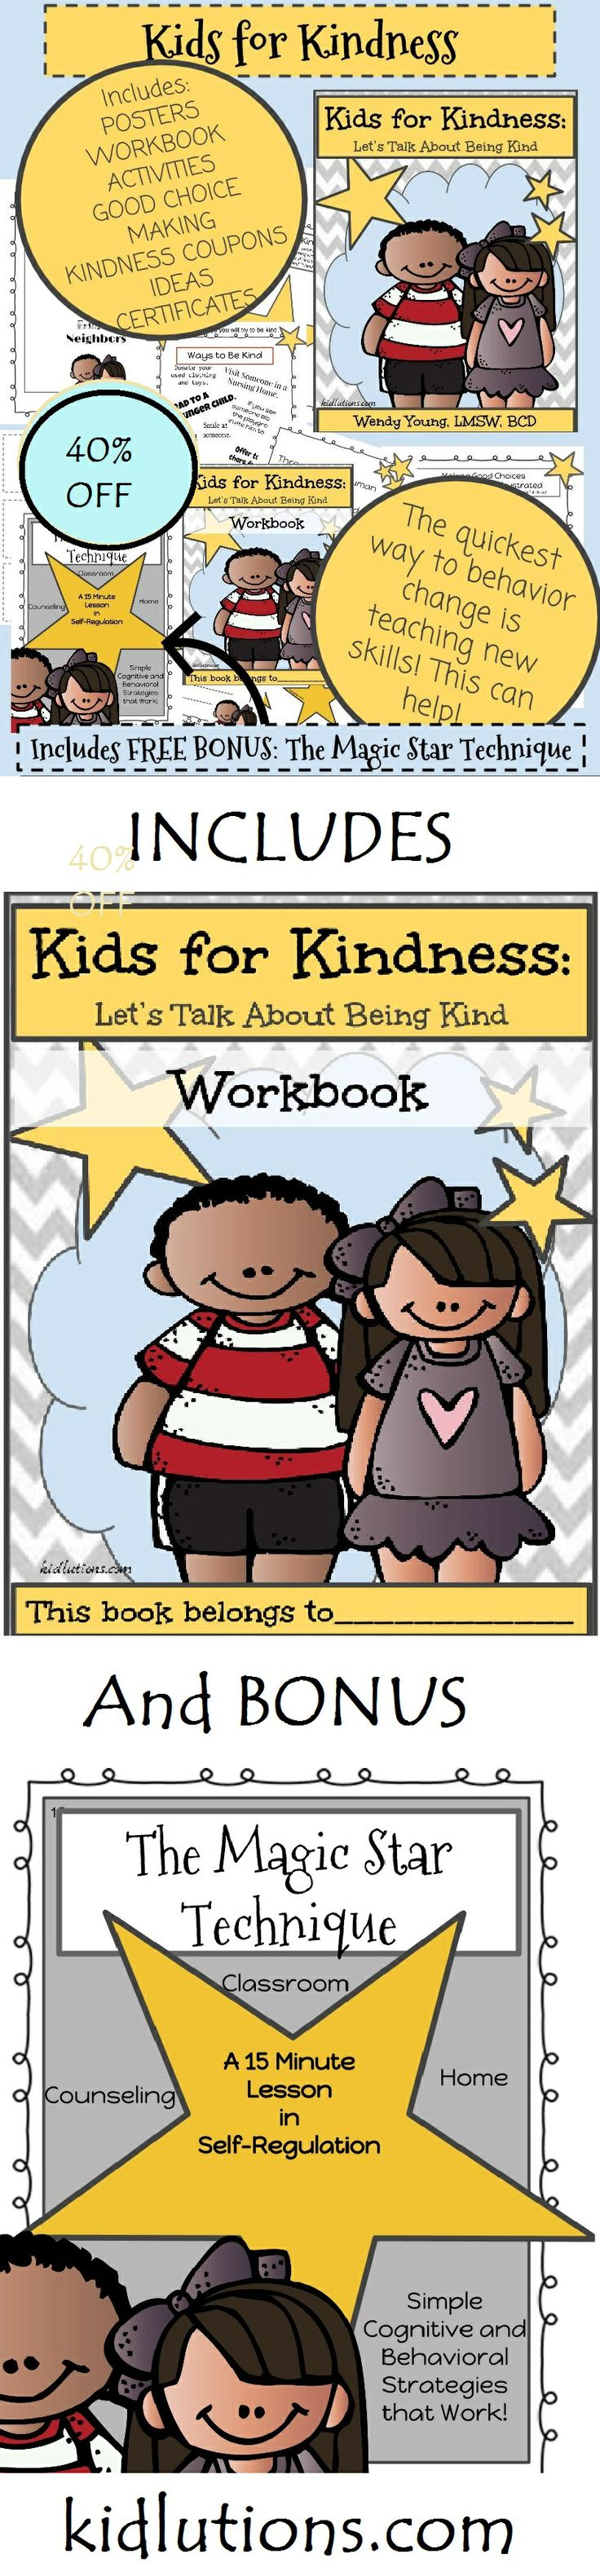 Kind is a verb. Yes, we can have kind thoughts, but until we put them into action, they benefit only us. Teach kids to be kind. 40% off now from Kidlutions. Find it HERE: http://www.kidlutions.com/kidsforkindness.html